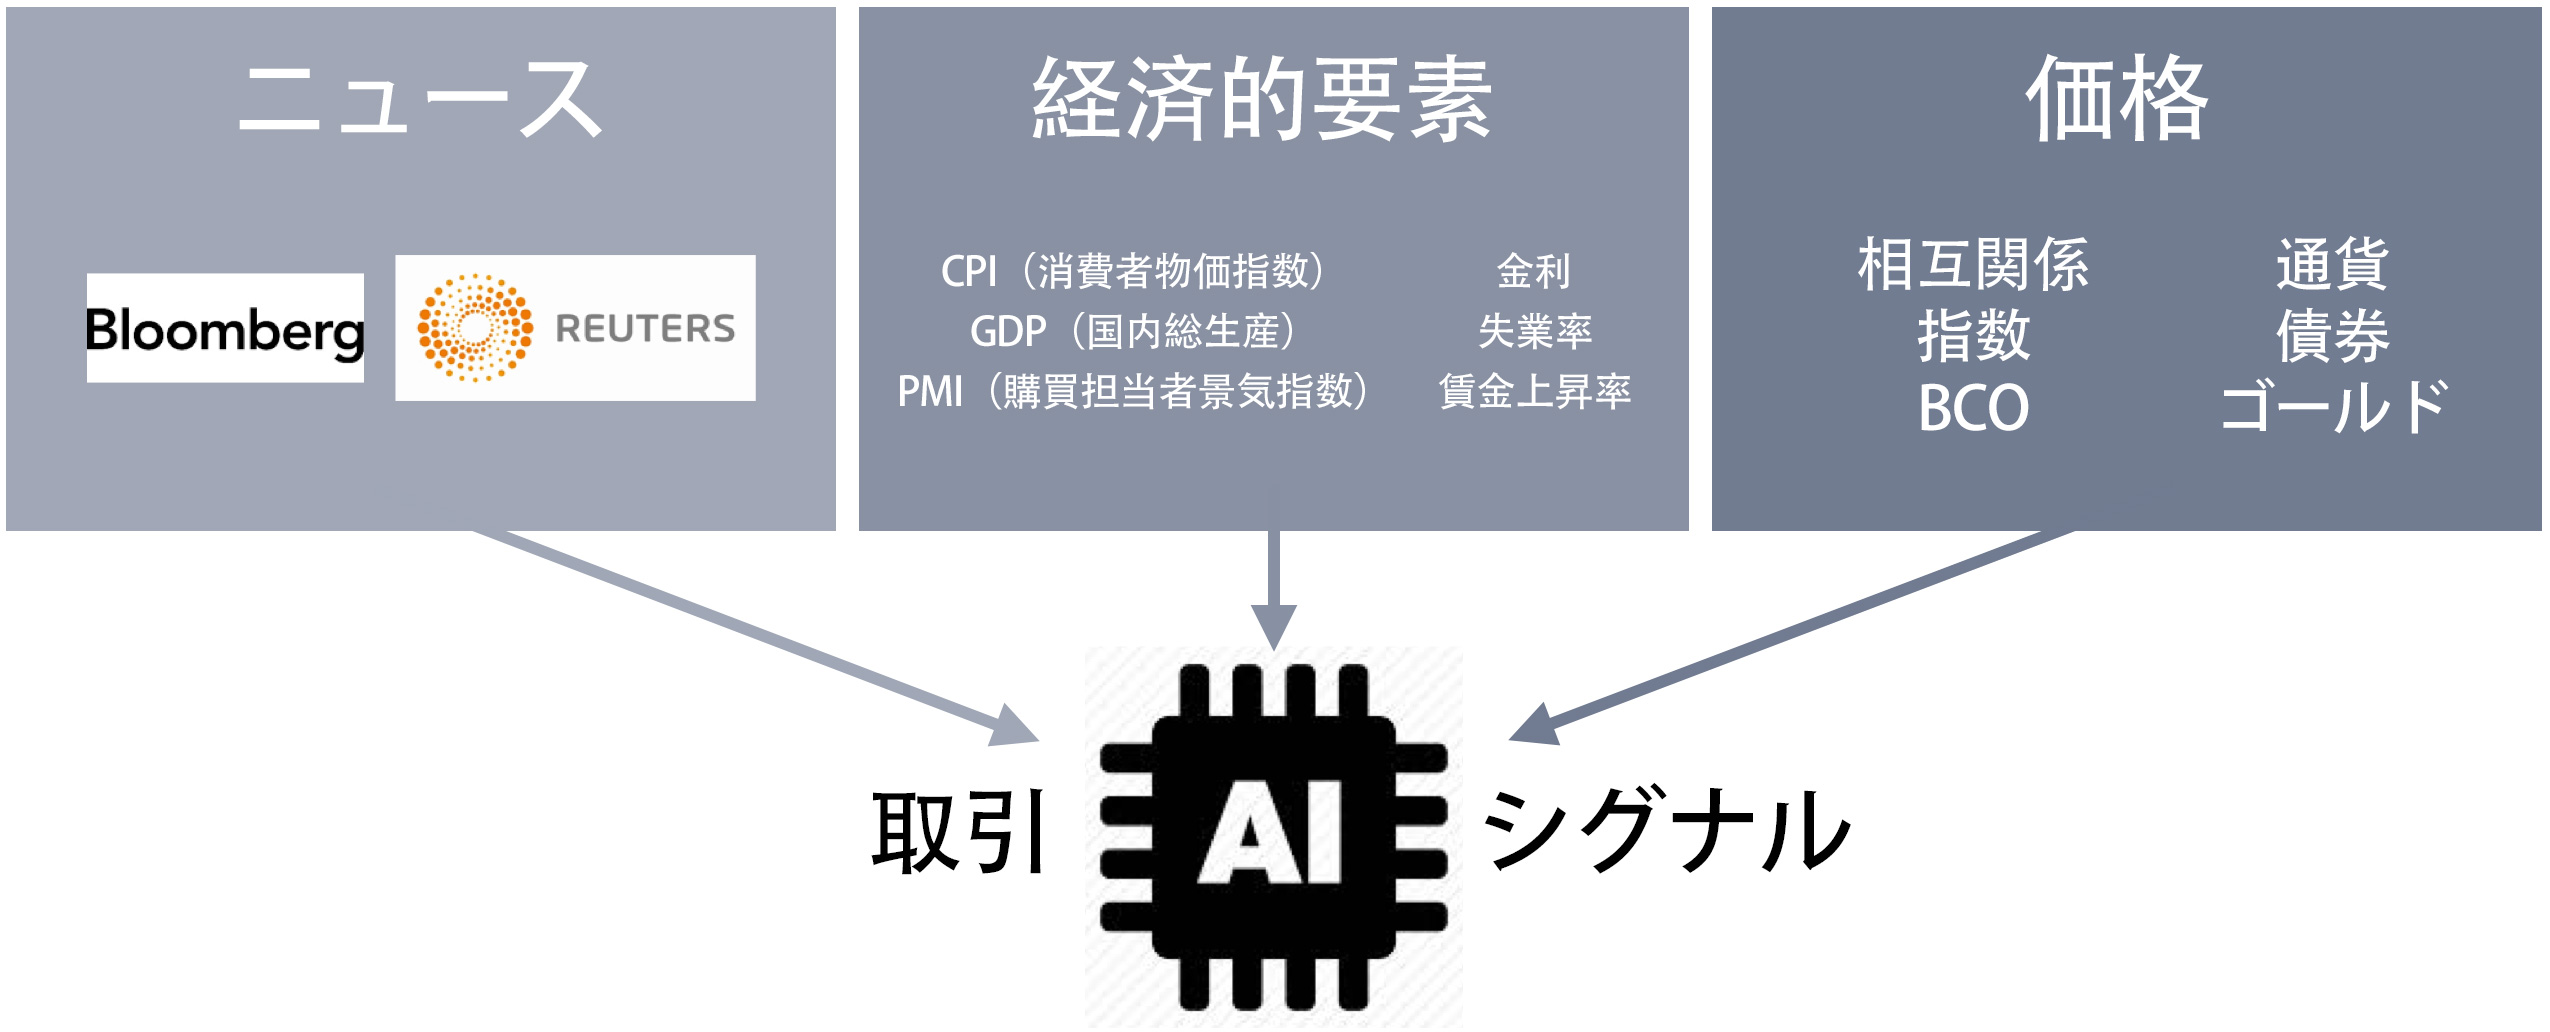 cp-global-artificial-intelligence-trading-signal-japanese